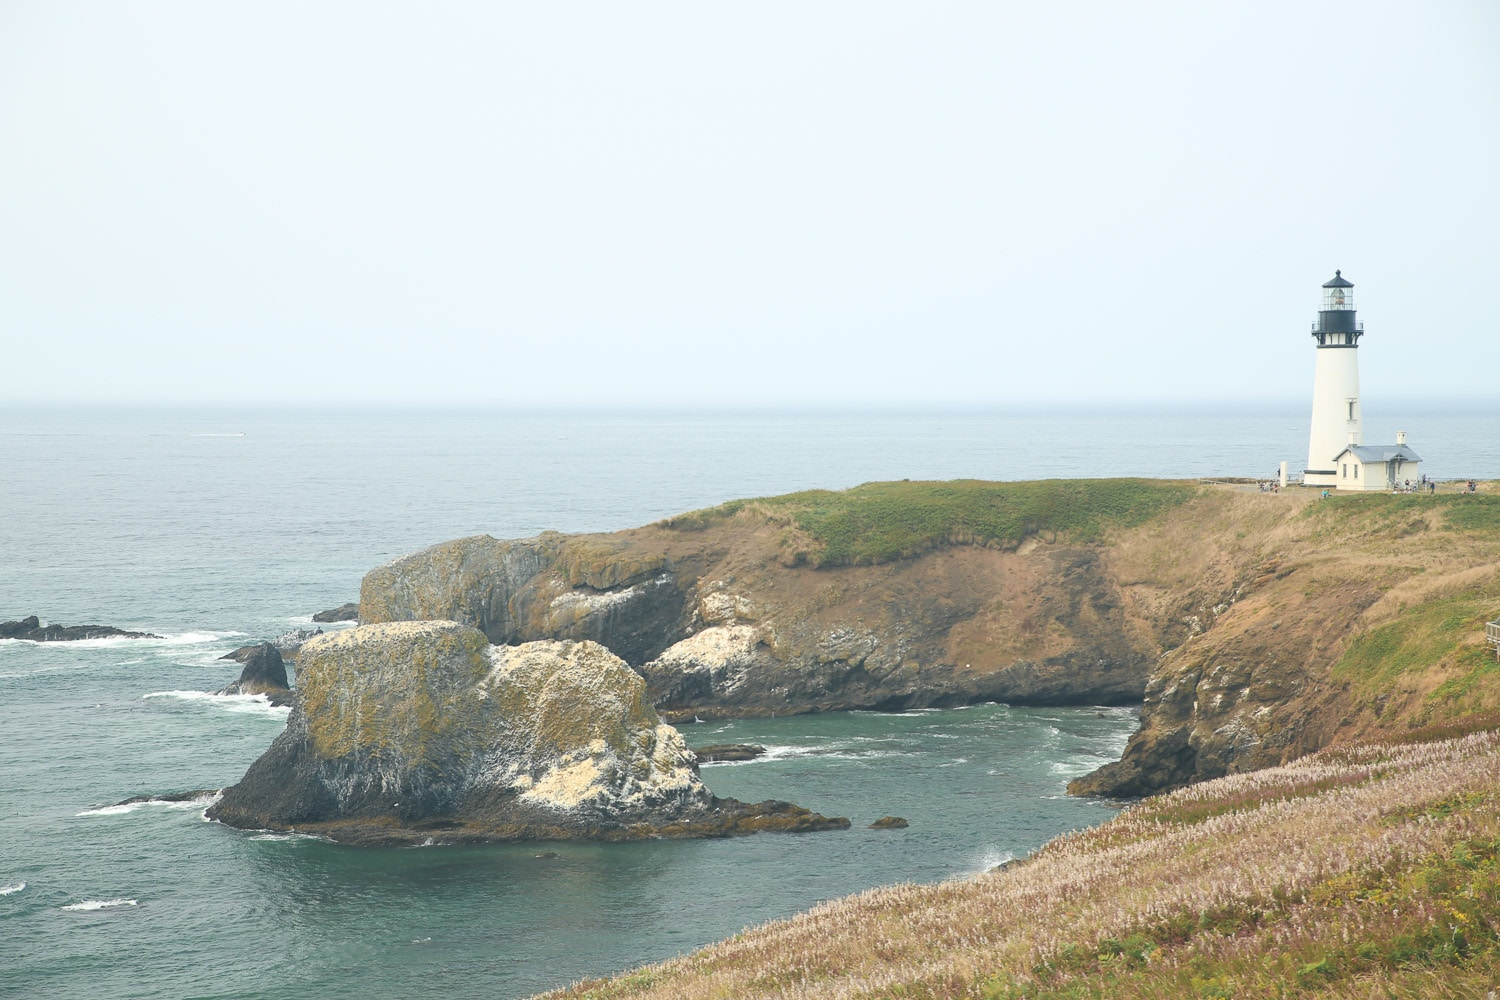 Yaquina-Head-Outstanding-Natural-Area-lighthouse-oregon Road trip en Oregon - guide spécial itinéraire  9 jours